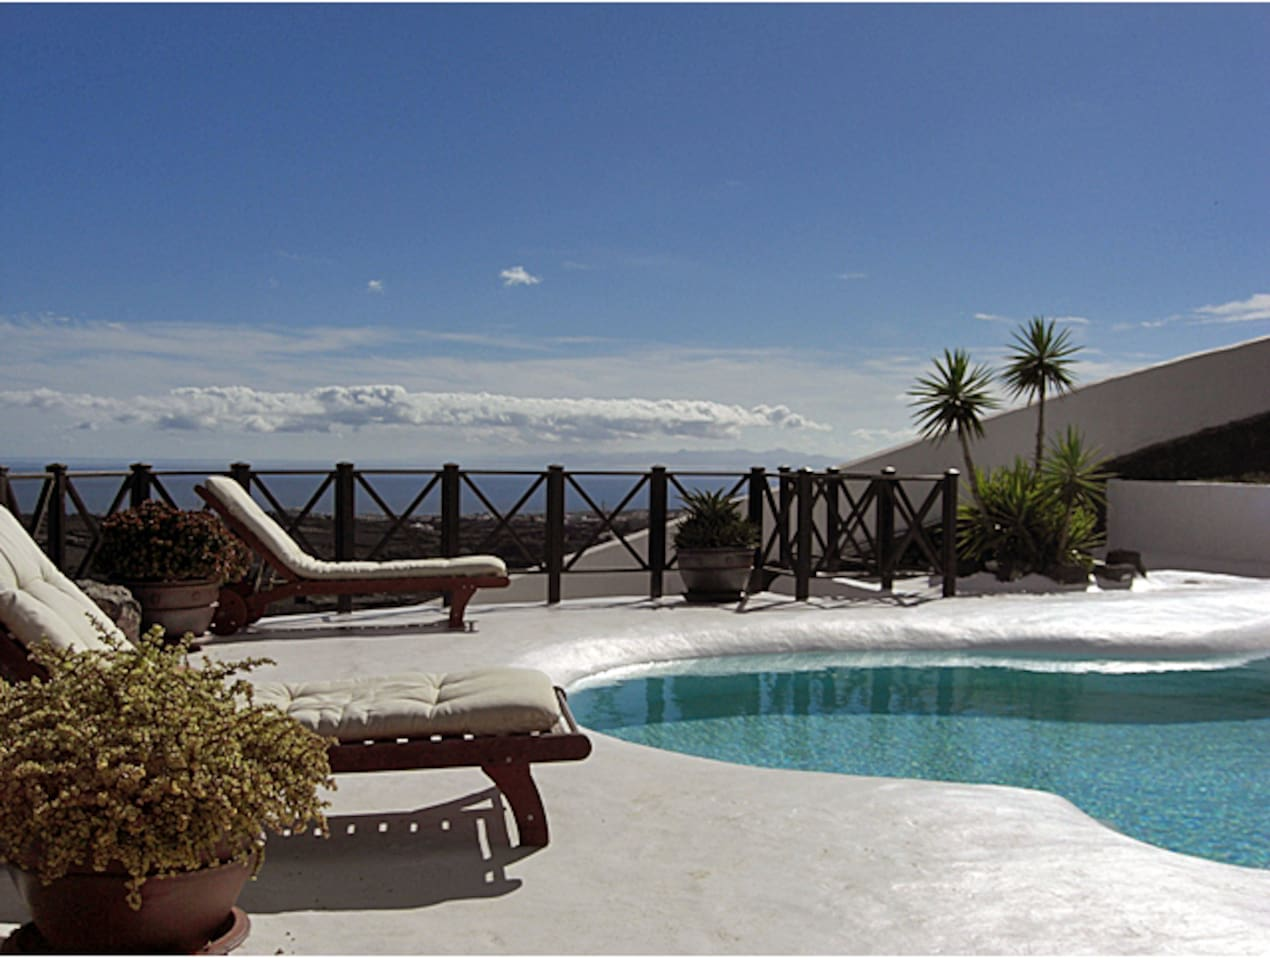 Cesar Manrique style pool and stunning views